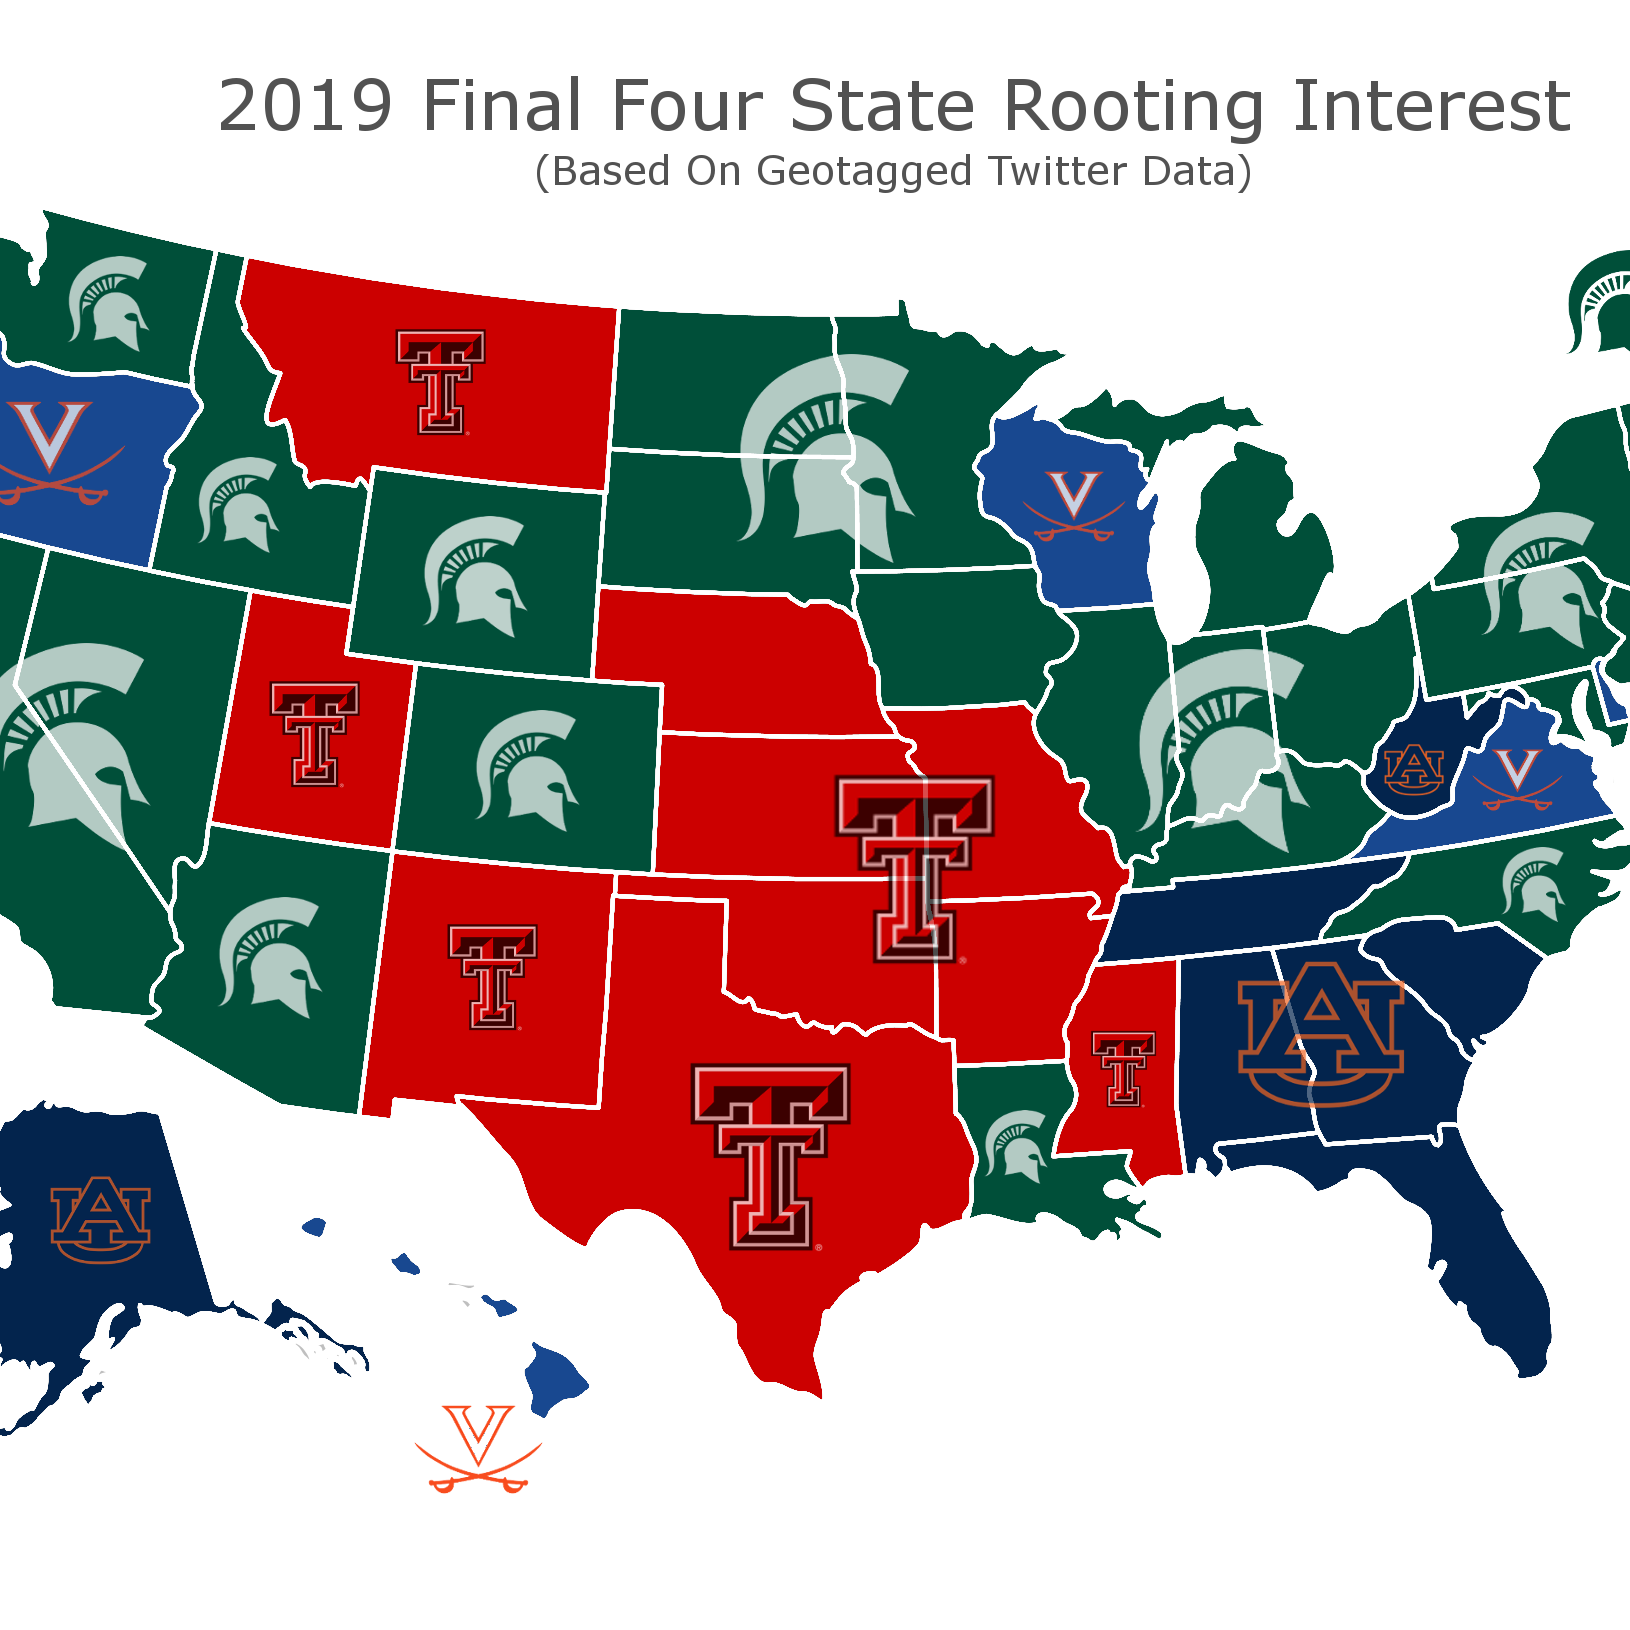 Most of America is rooting for Michigan State in Final Four, data says